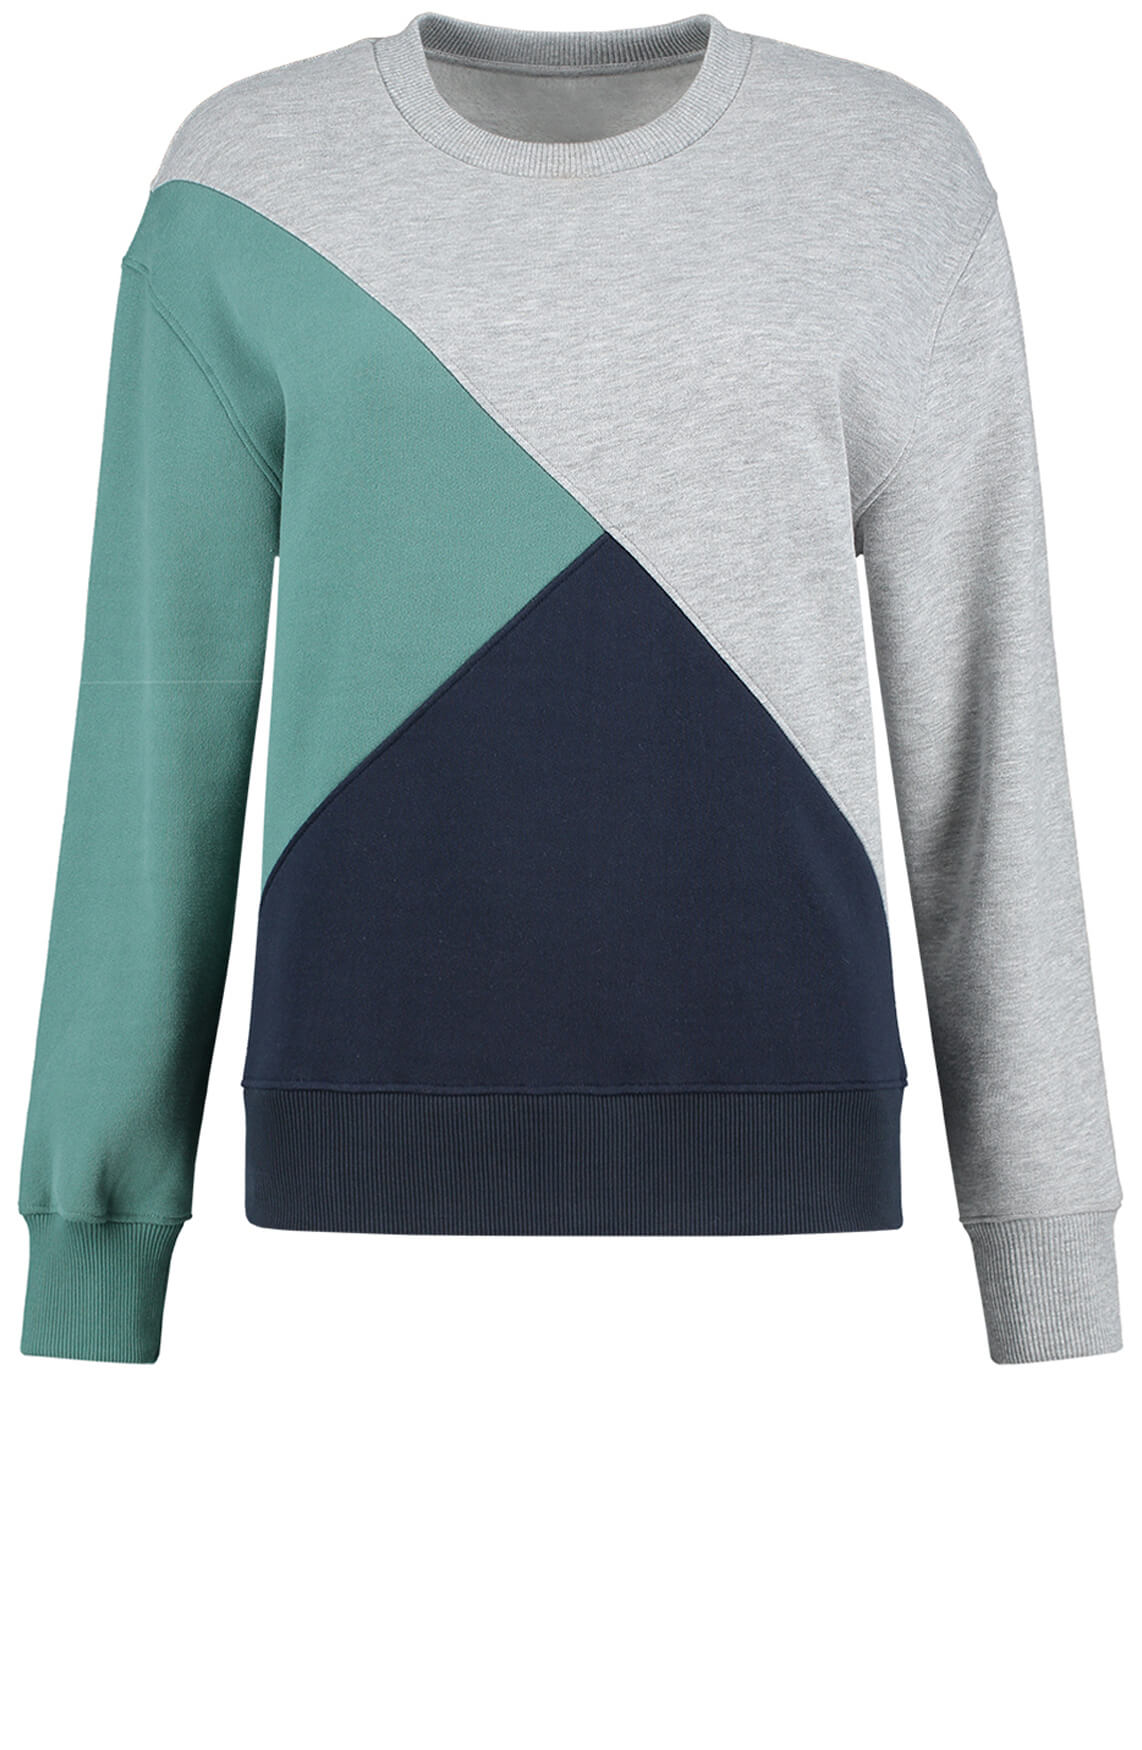 Fifth House Dames Elin colourblock sweater groen